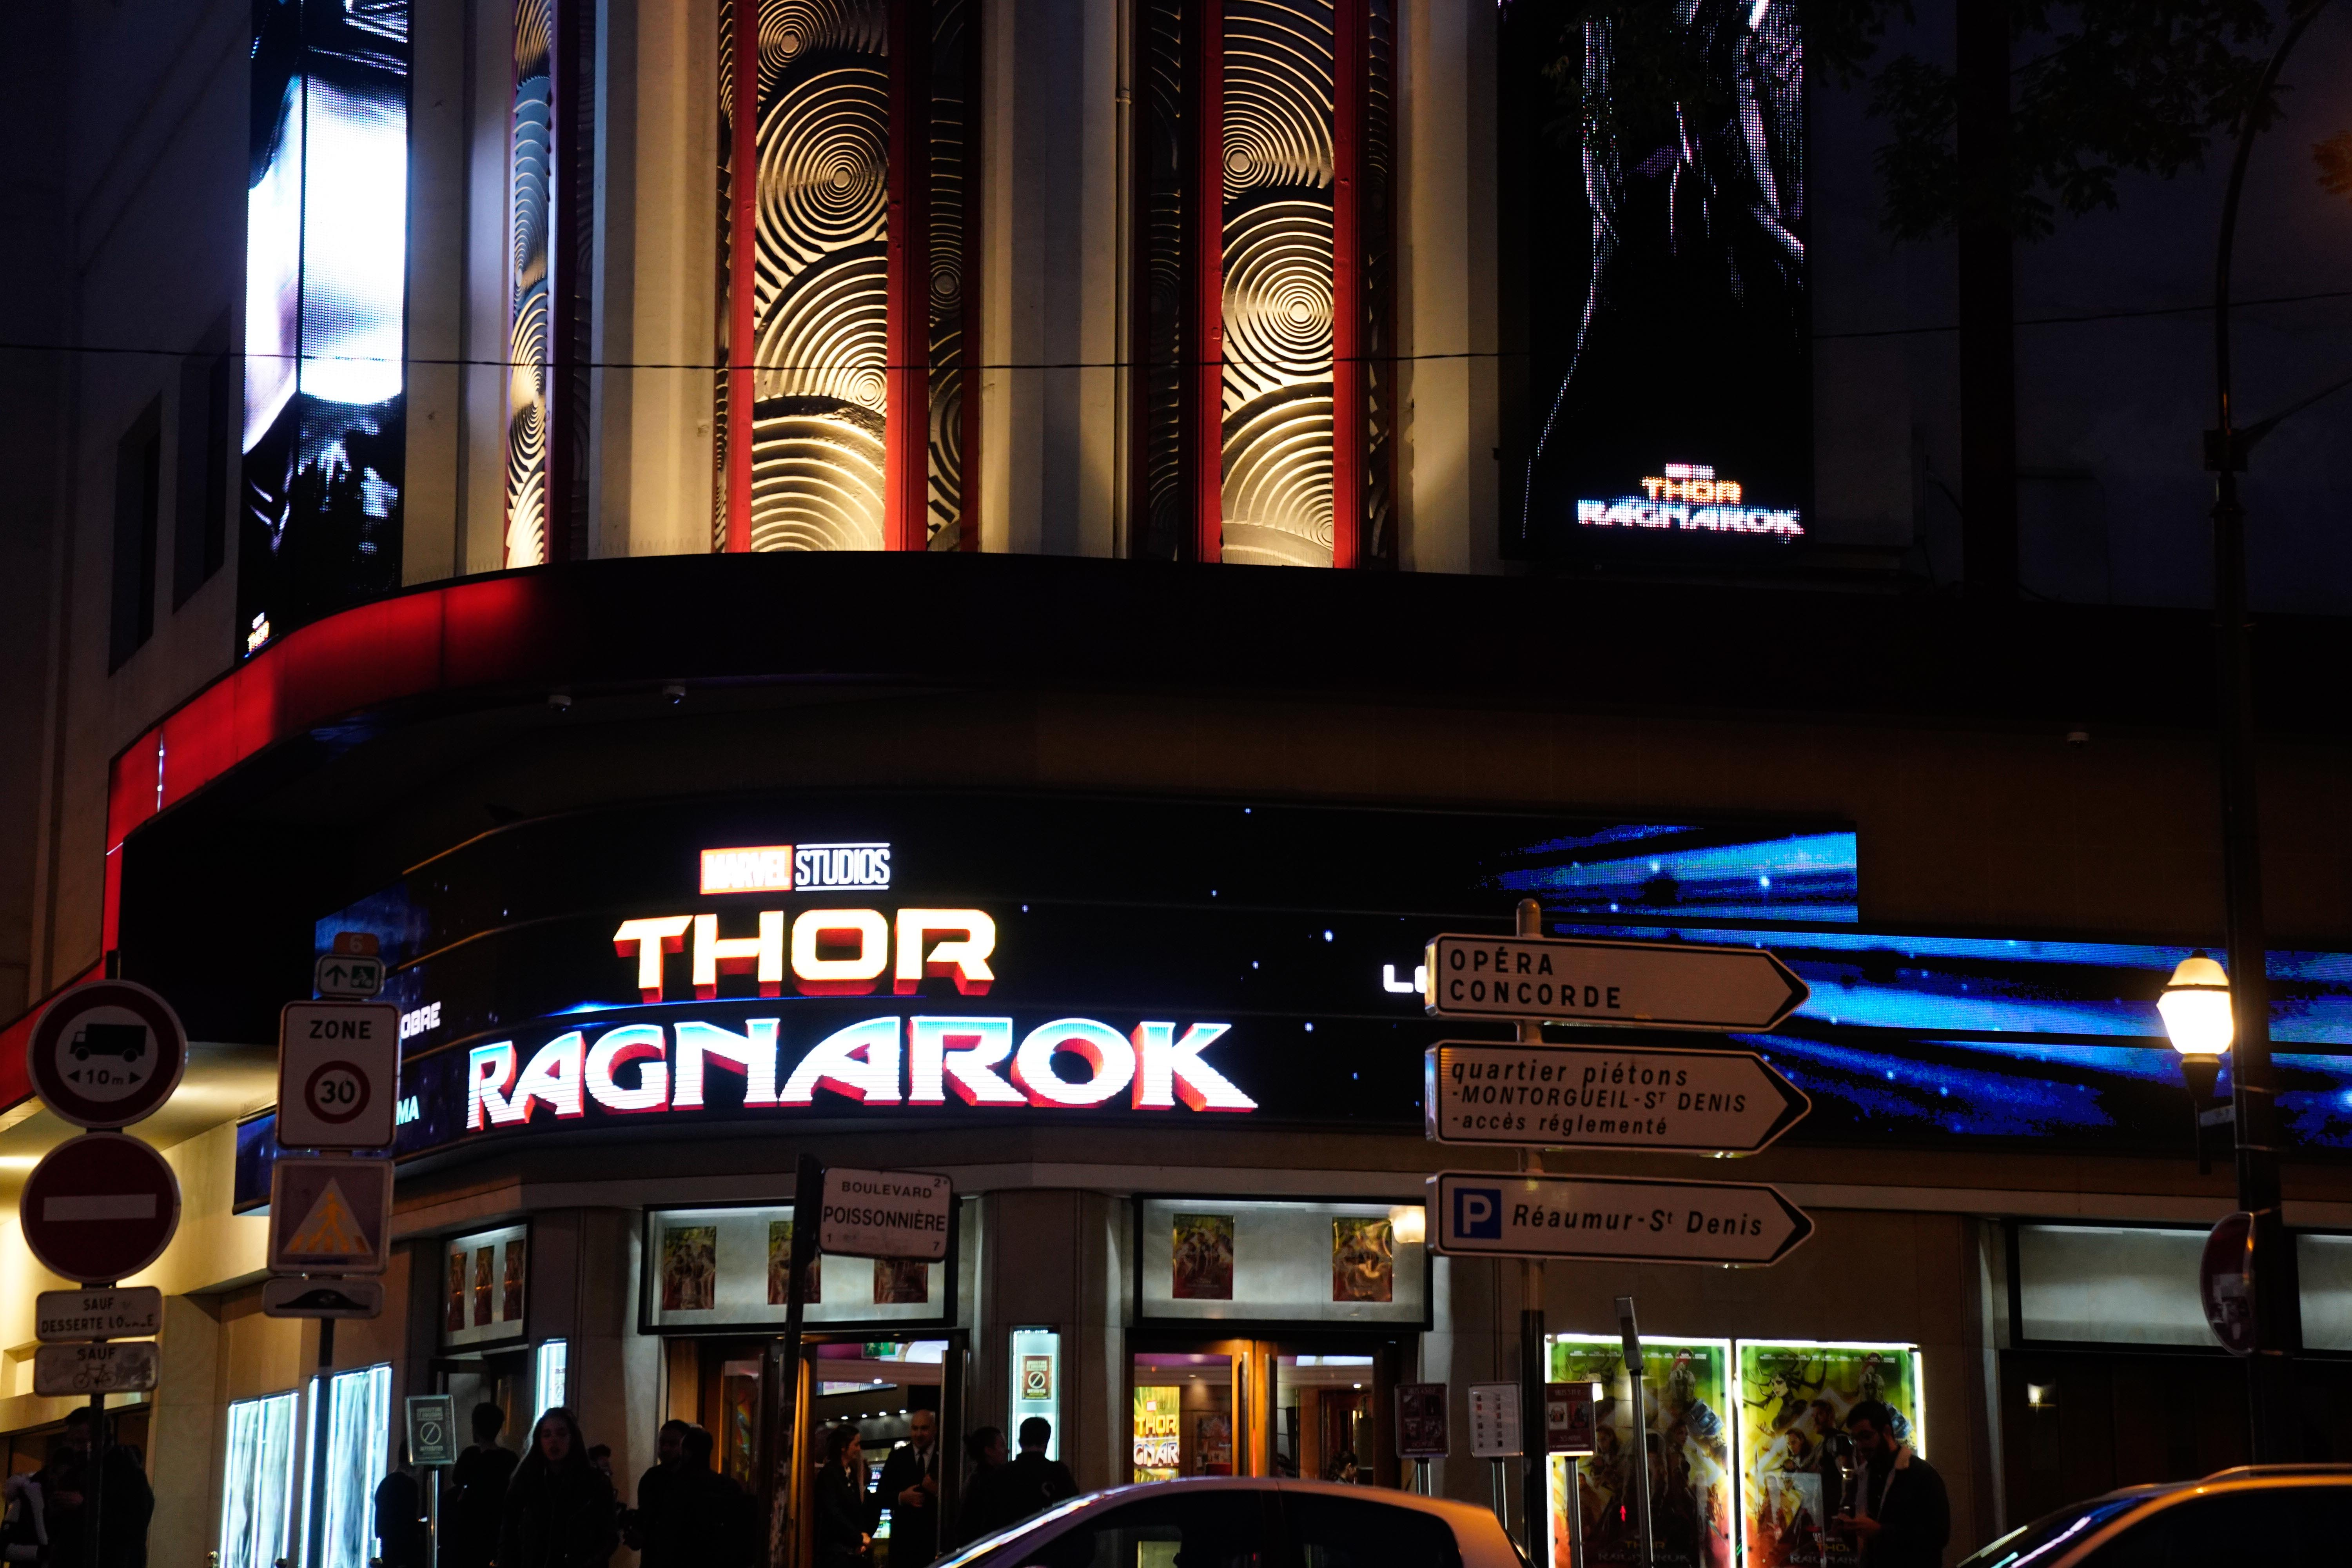 Thor Ragnarok : Paris Premiere At Le Grand Rex